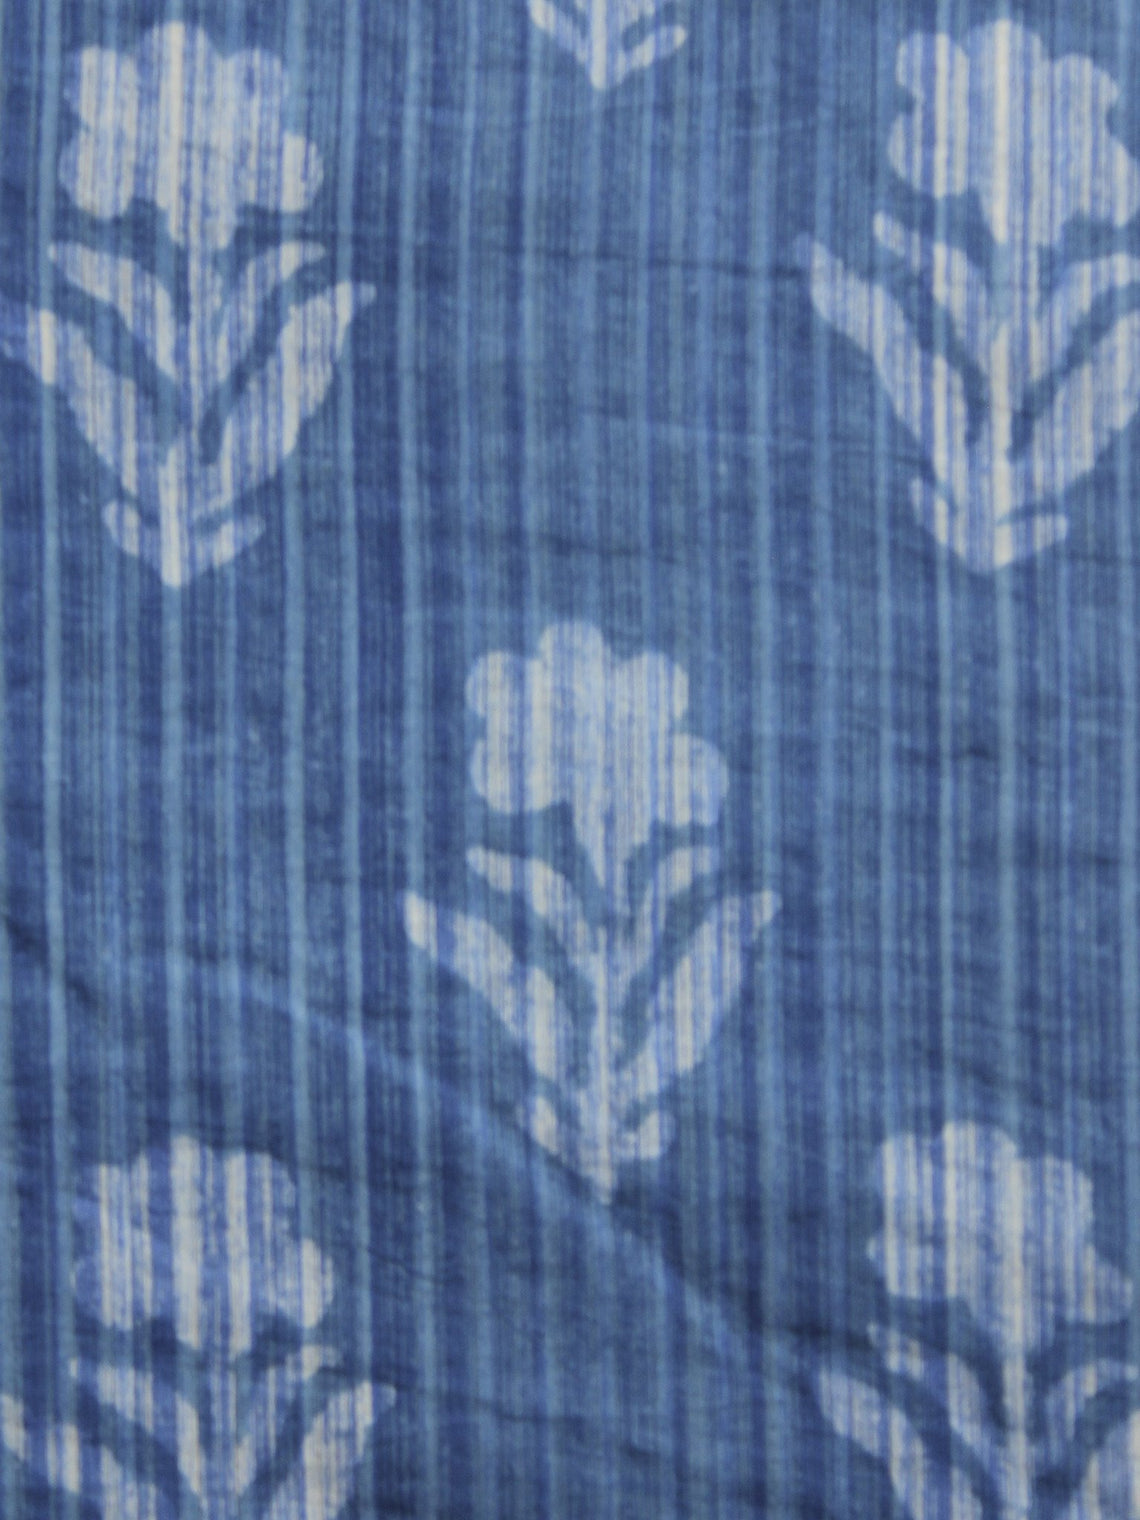 Indigo Ivory Hand Block Printed Cotton Fabric Per Meter - F001F905